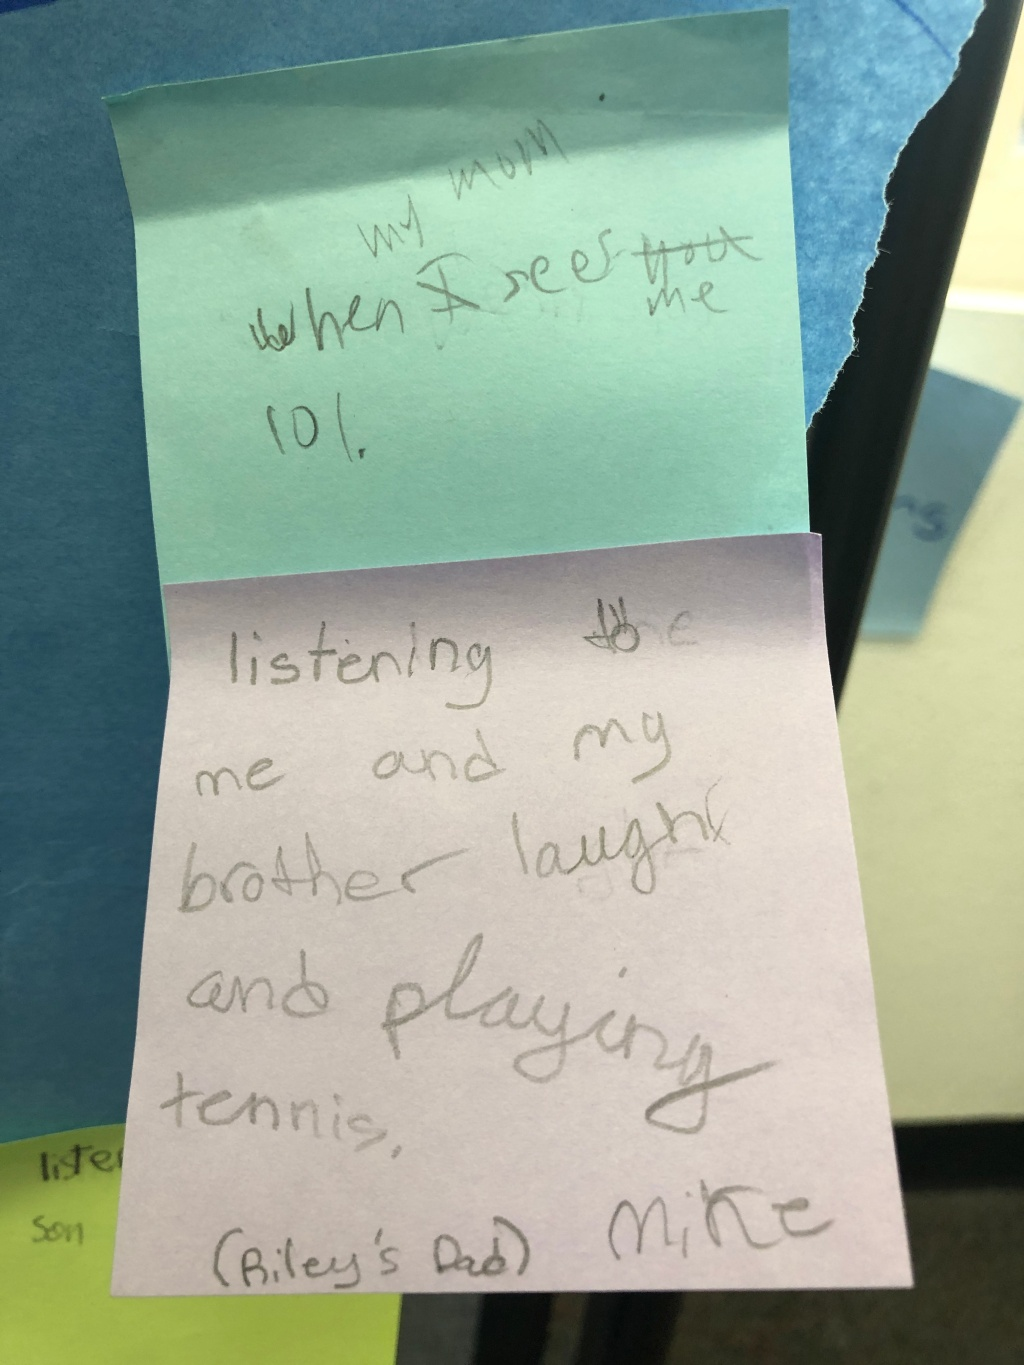 Written post-it with parent descriptions about what joy means to them